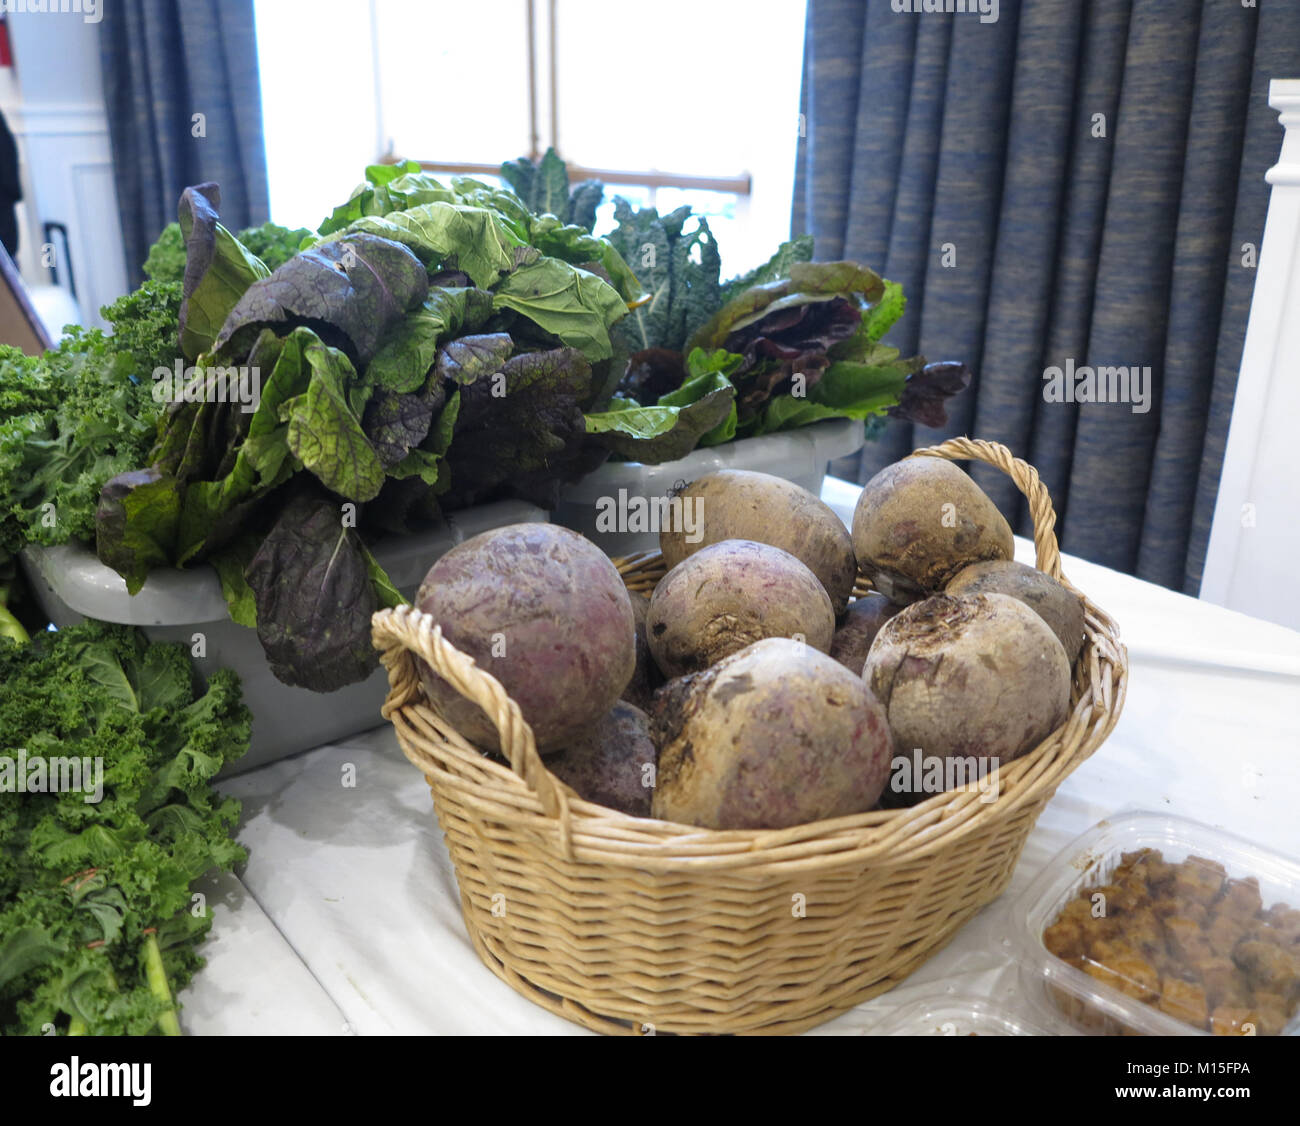 Bunches of Fresh Picked Vegetables Stock Photo